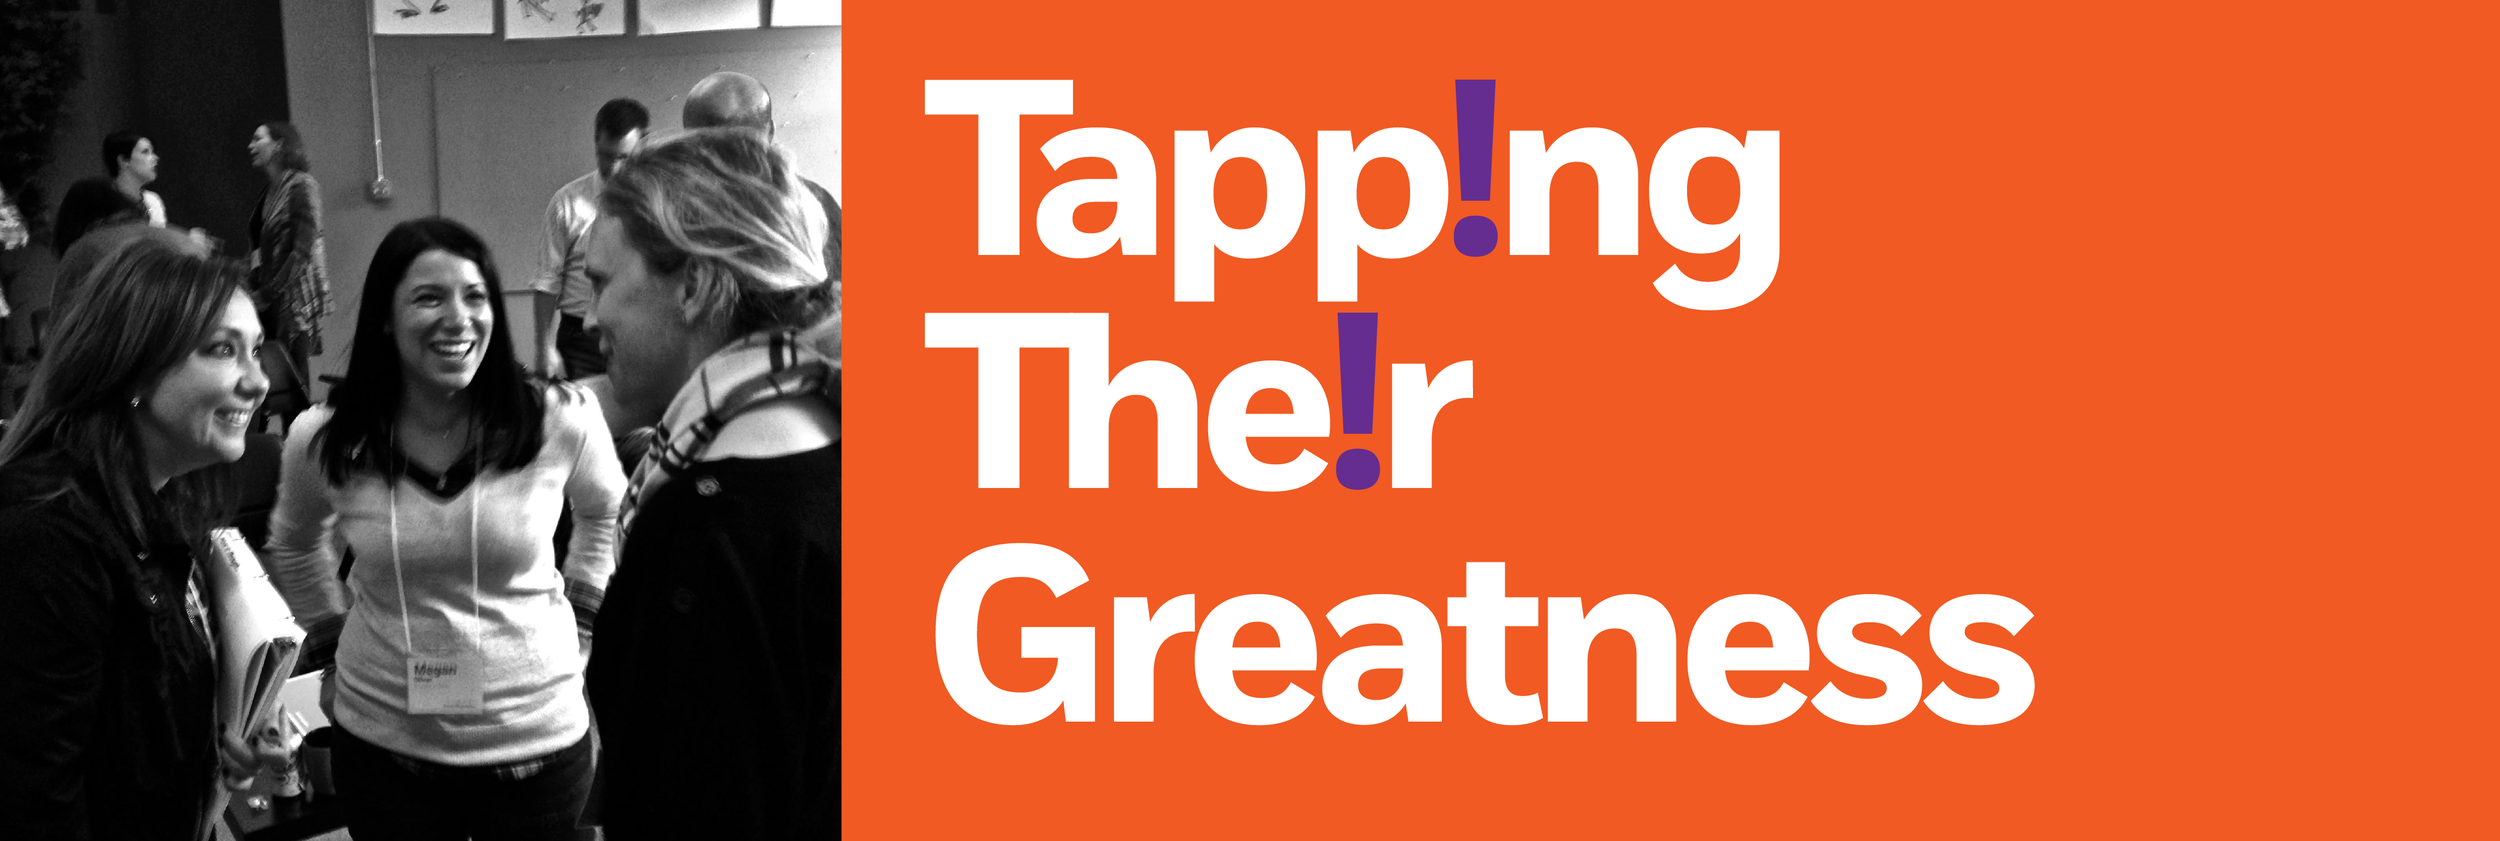 tapping-their-greatness.png